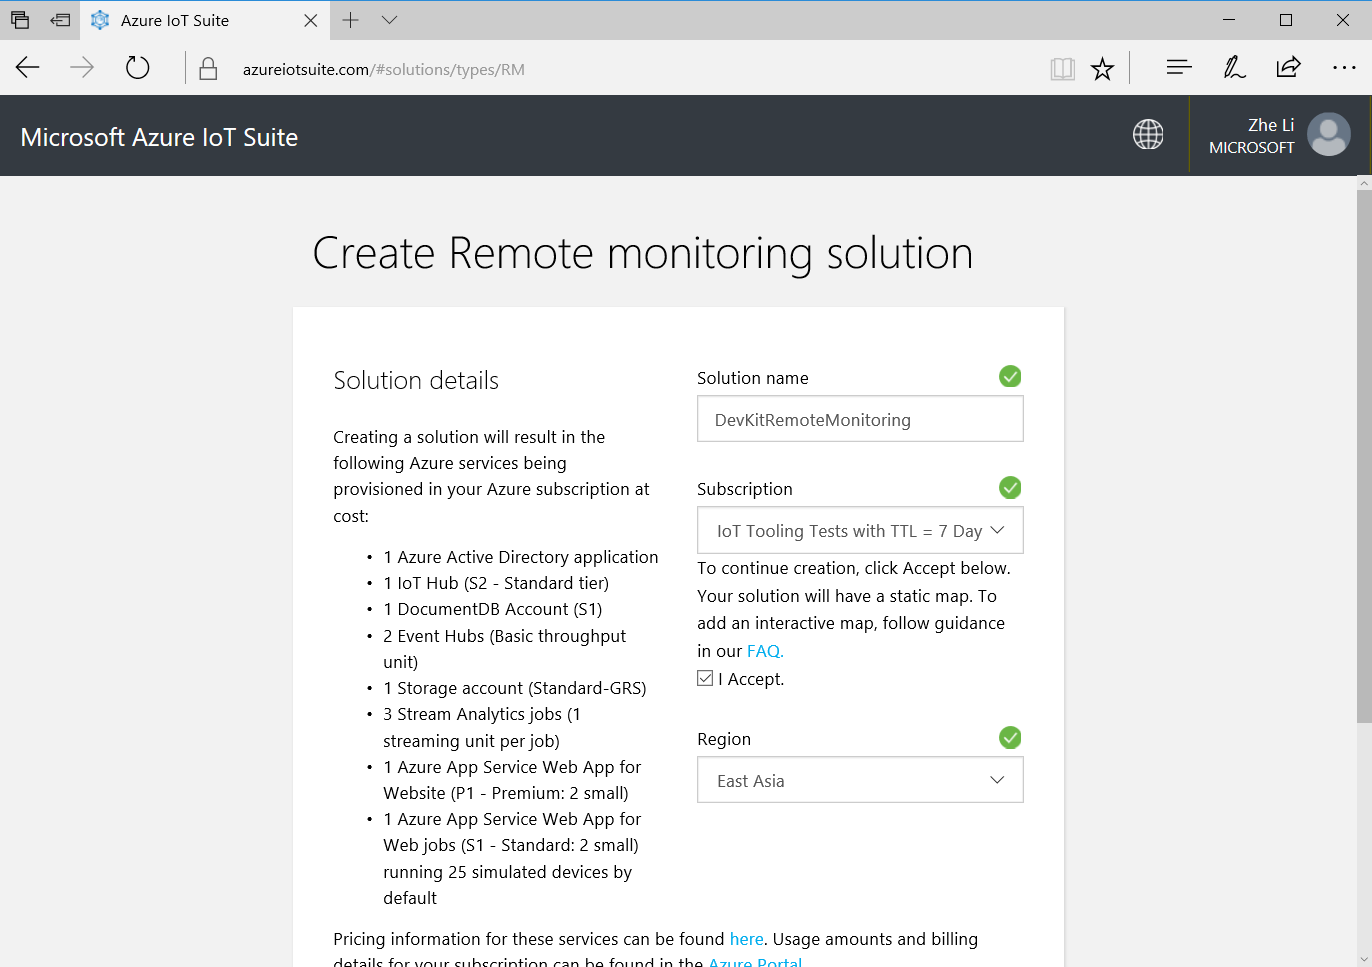 remote-monitoring-azure-iot-suite-new-solution